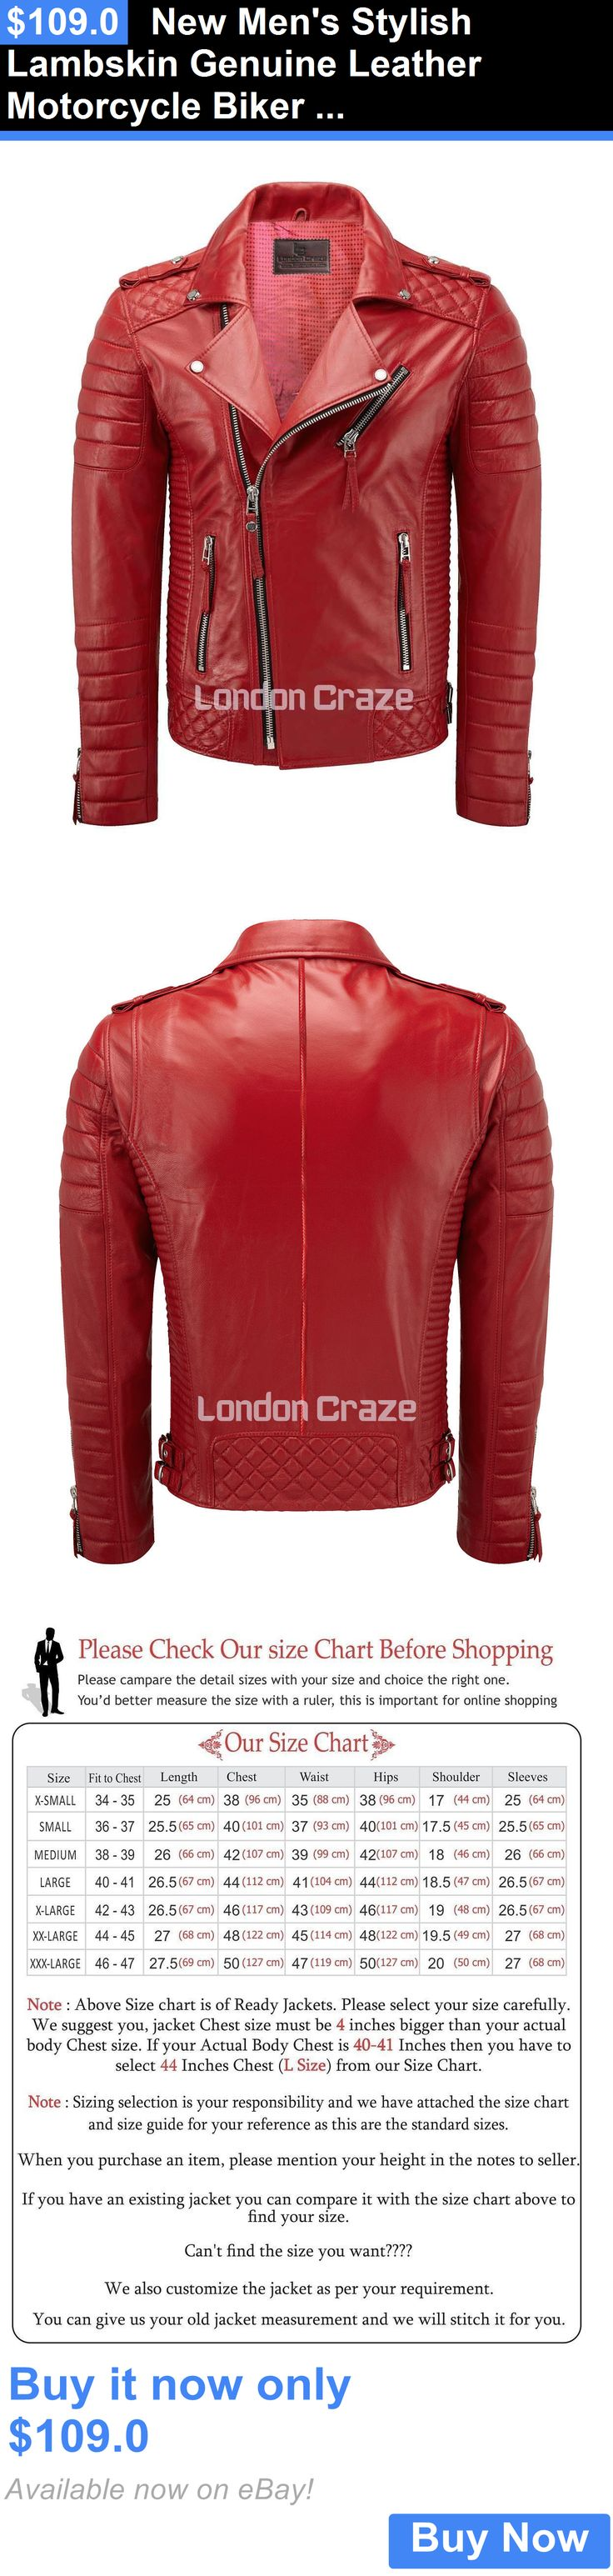 Men Coats And Jackets: New Mens Stylish Lambskin Genuine Leather Motorcycle Biker Jacket Red BUY IT NOW ONLY: $109.0